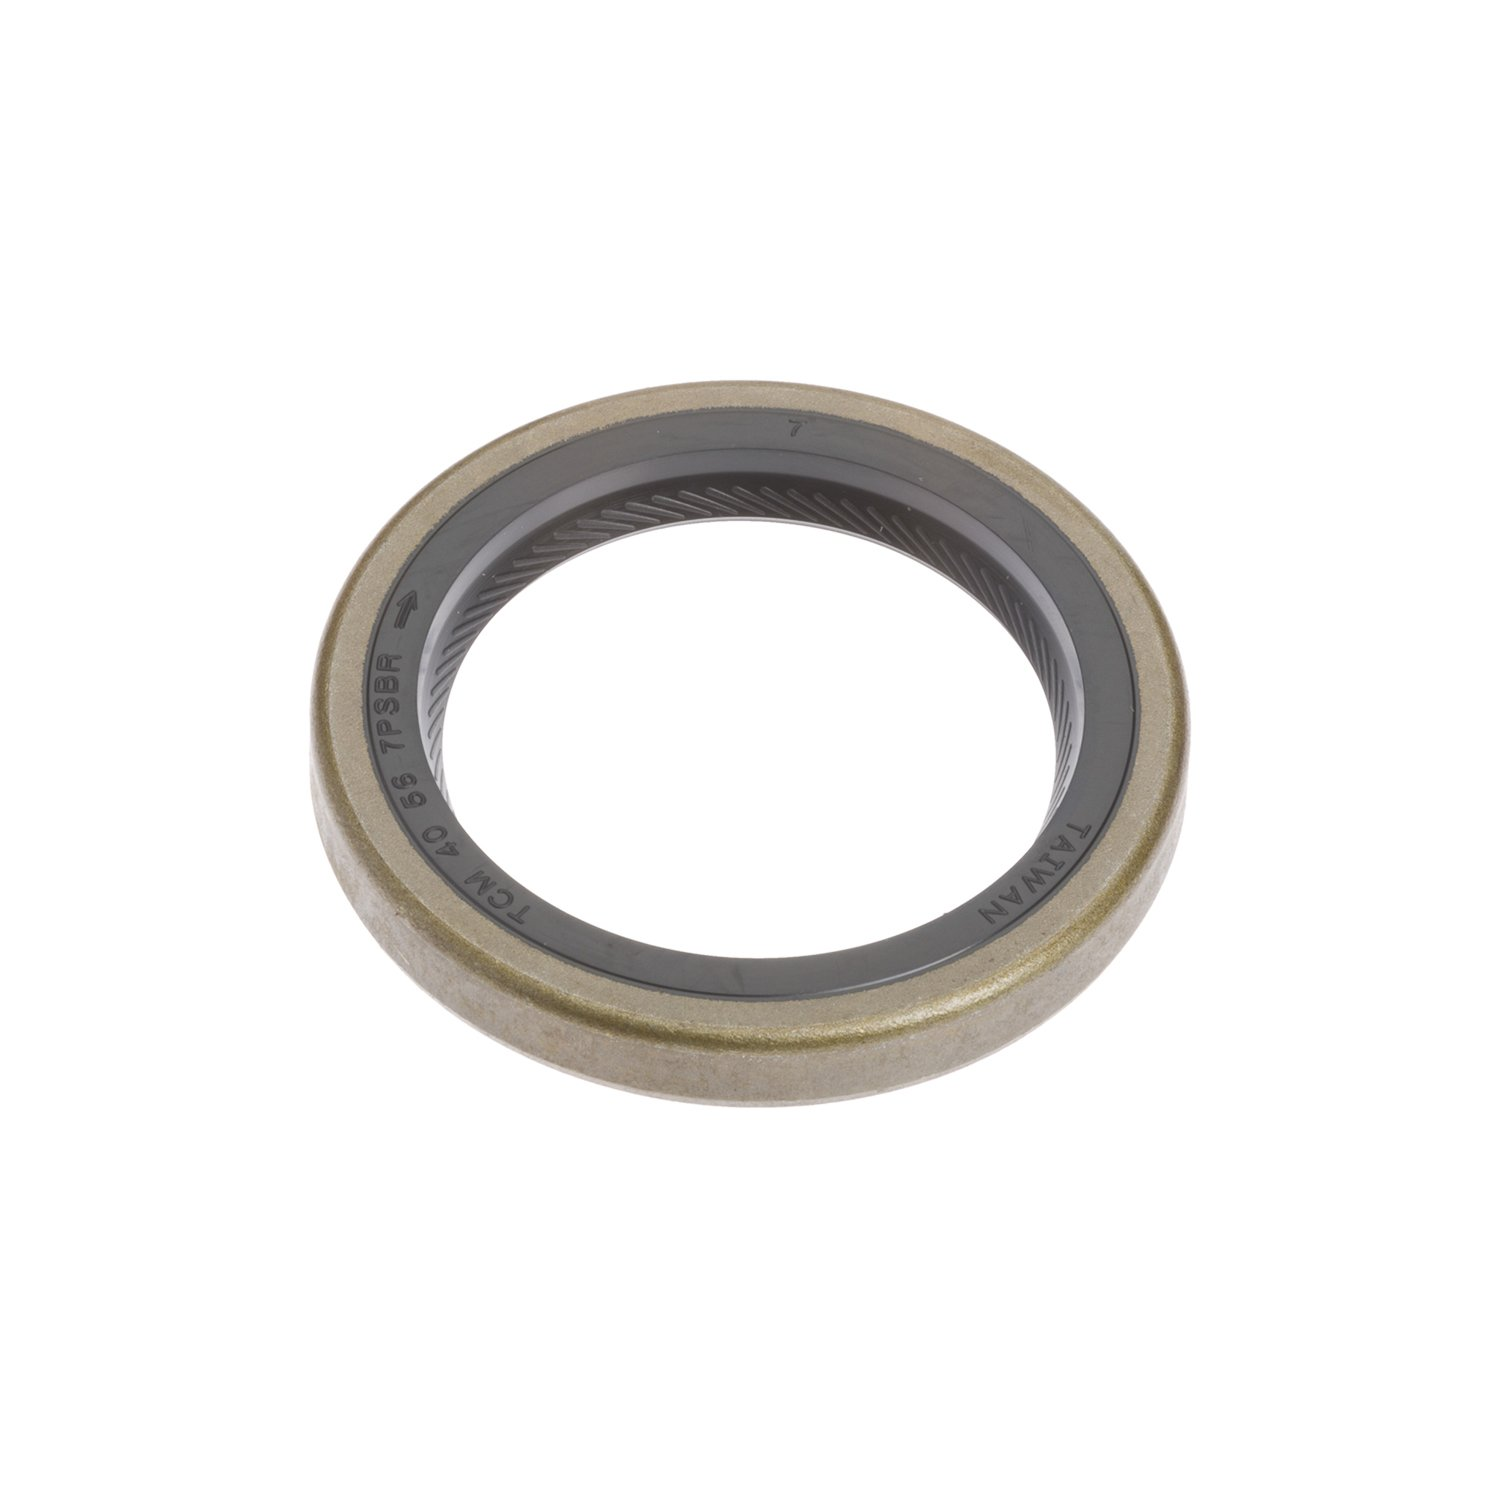 National 224025 Oil Seal 224025-NAT